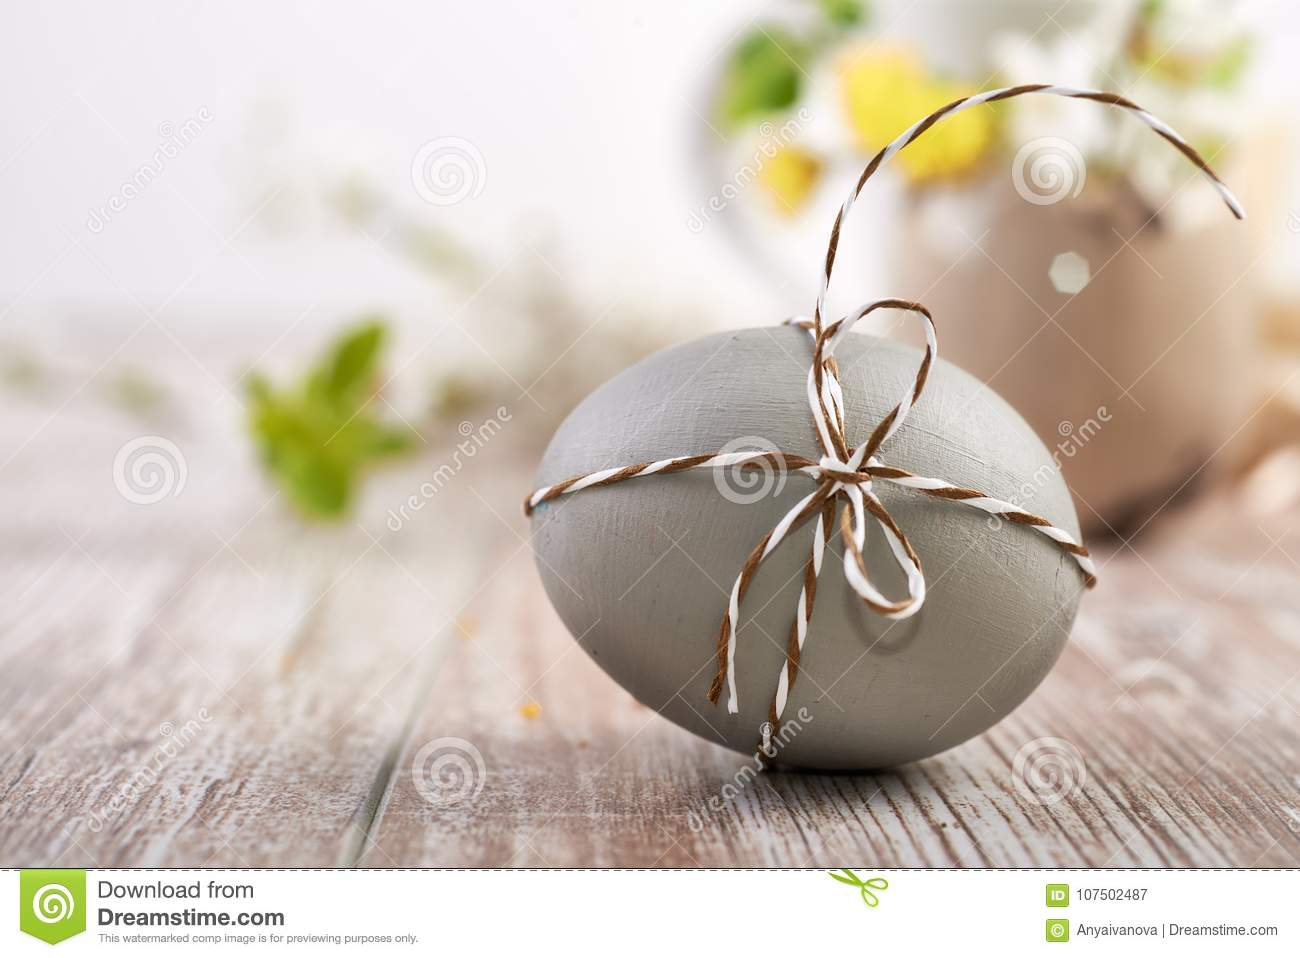 Closeup on grey Easter egg tied with checkered cord on wood